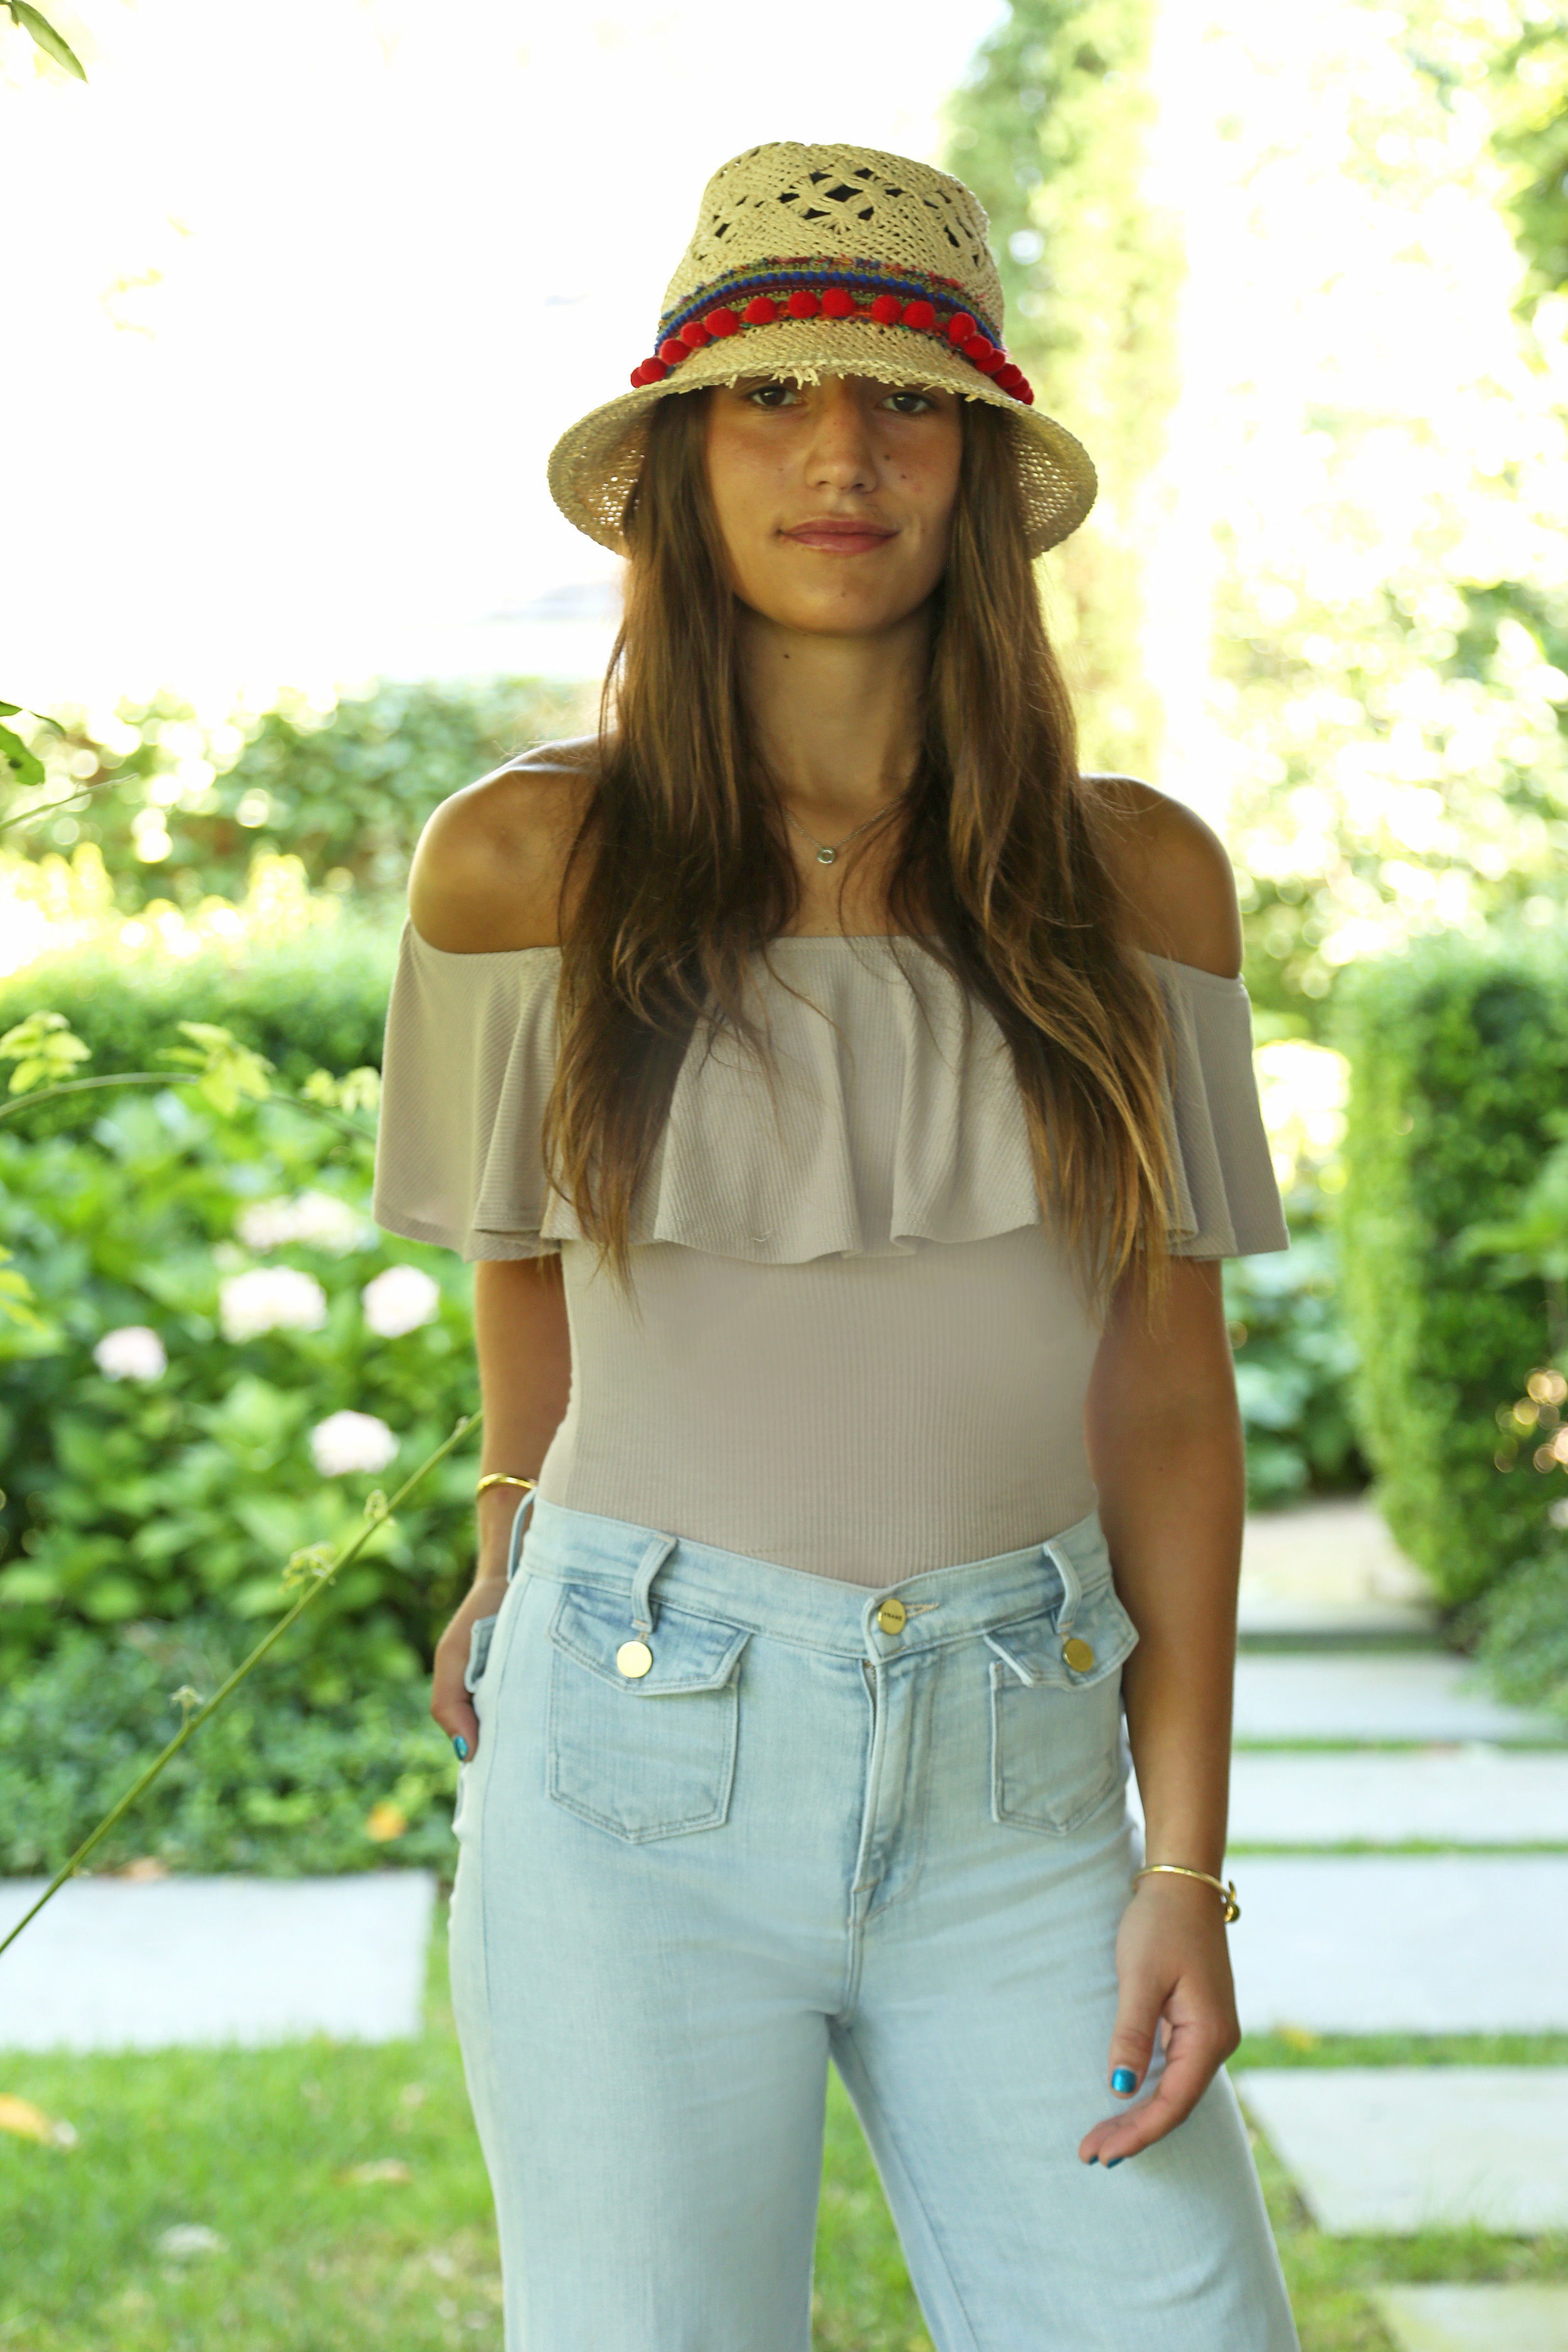 SOPHIE BICKLEY YIN 2MY YANG SISTER BLOGGERS STRAW HATS